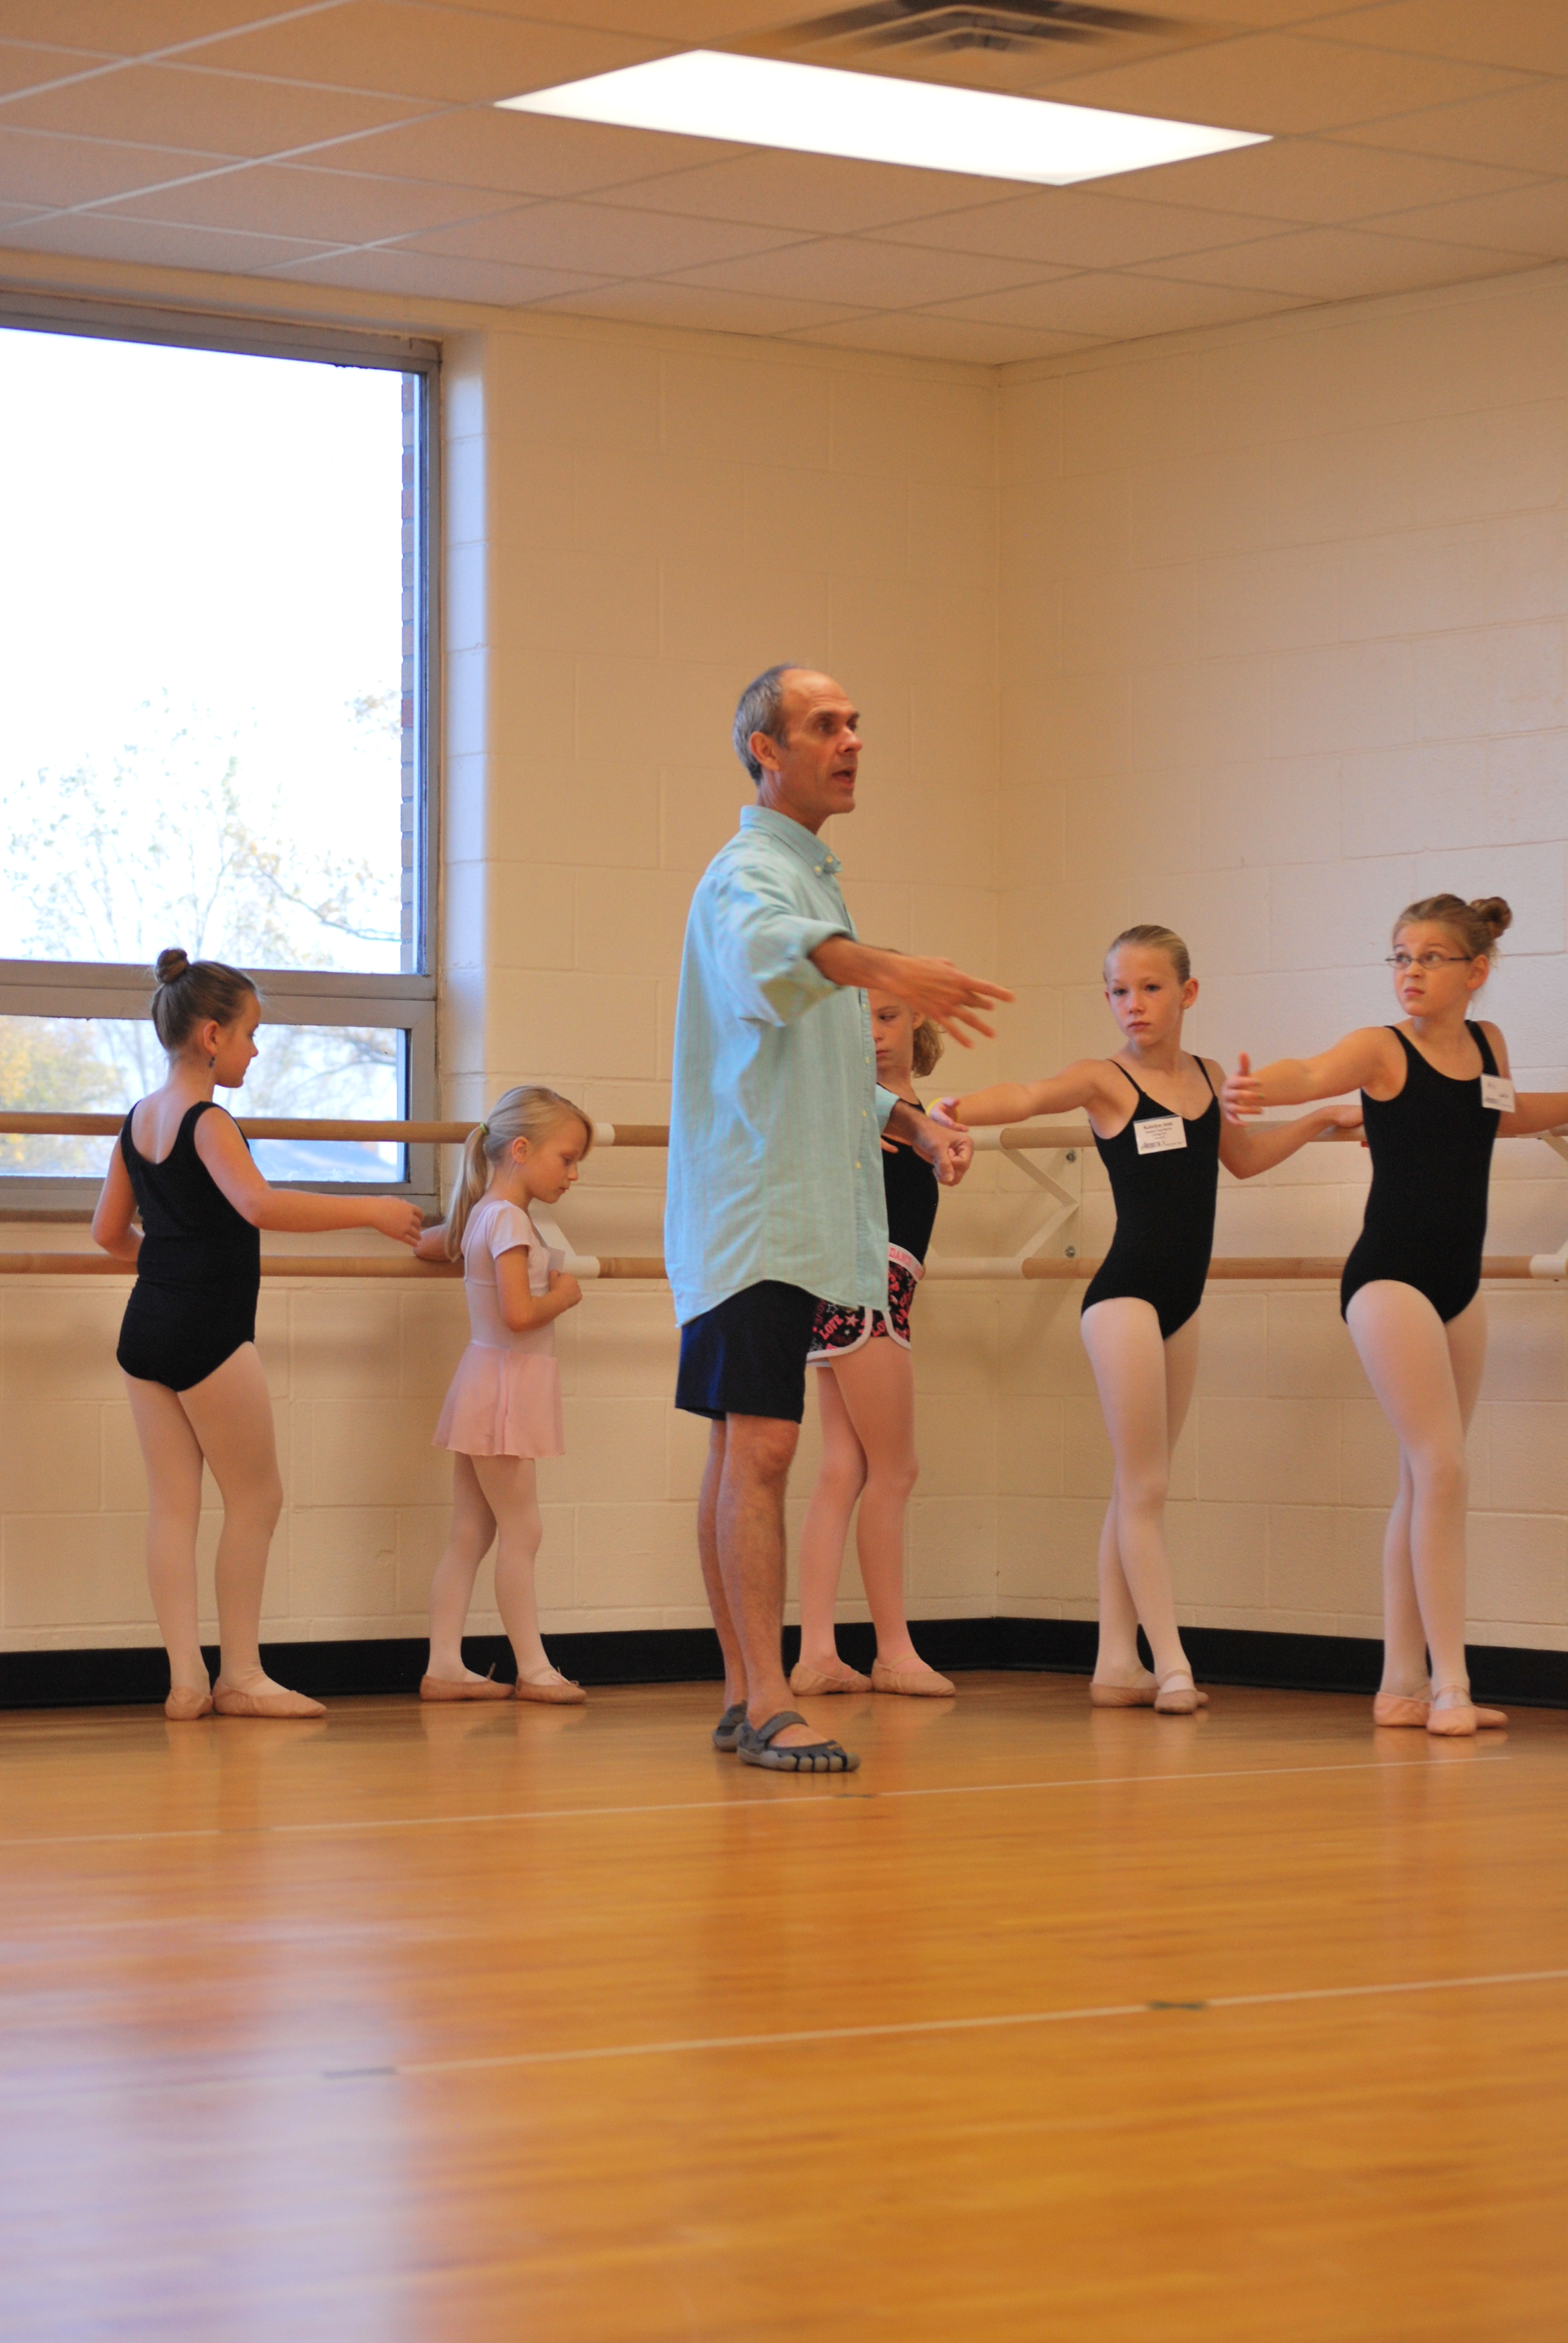 Robert Underwood from Houston Ballet teaching a masterclass.